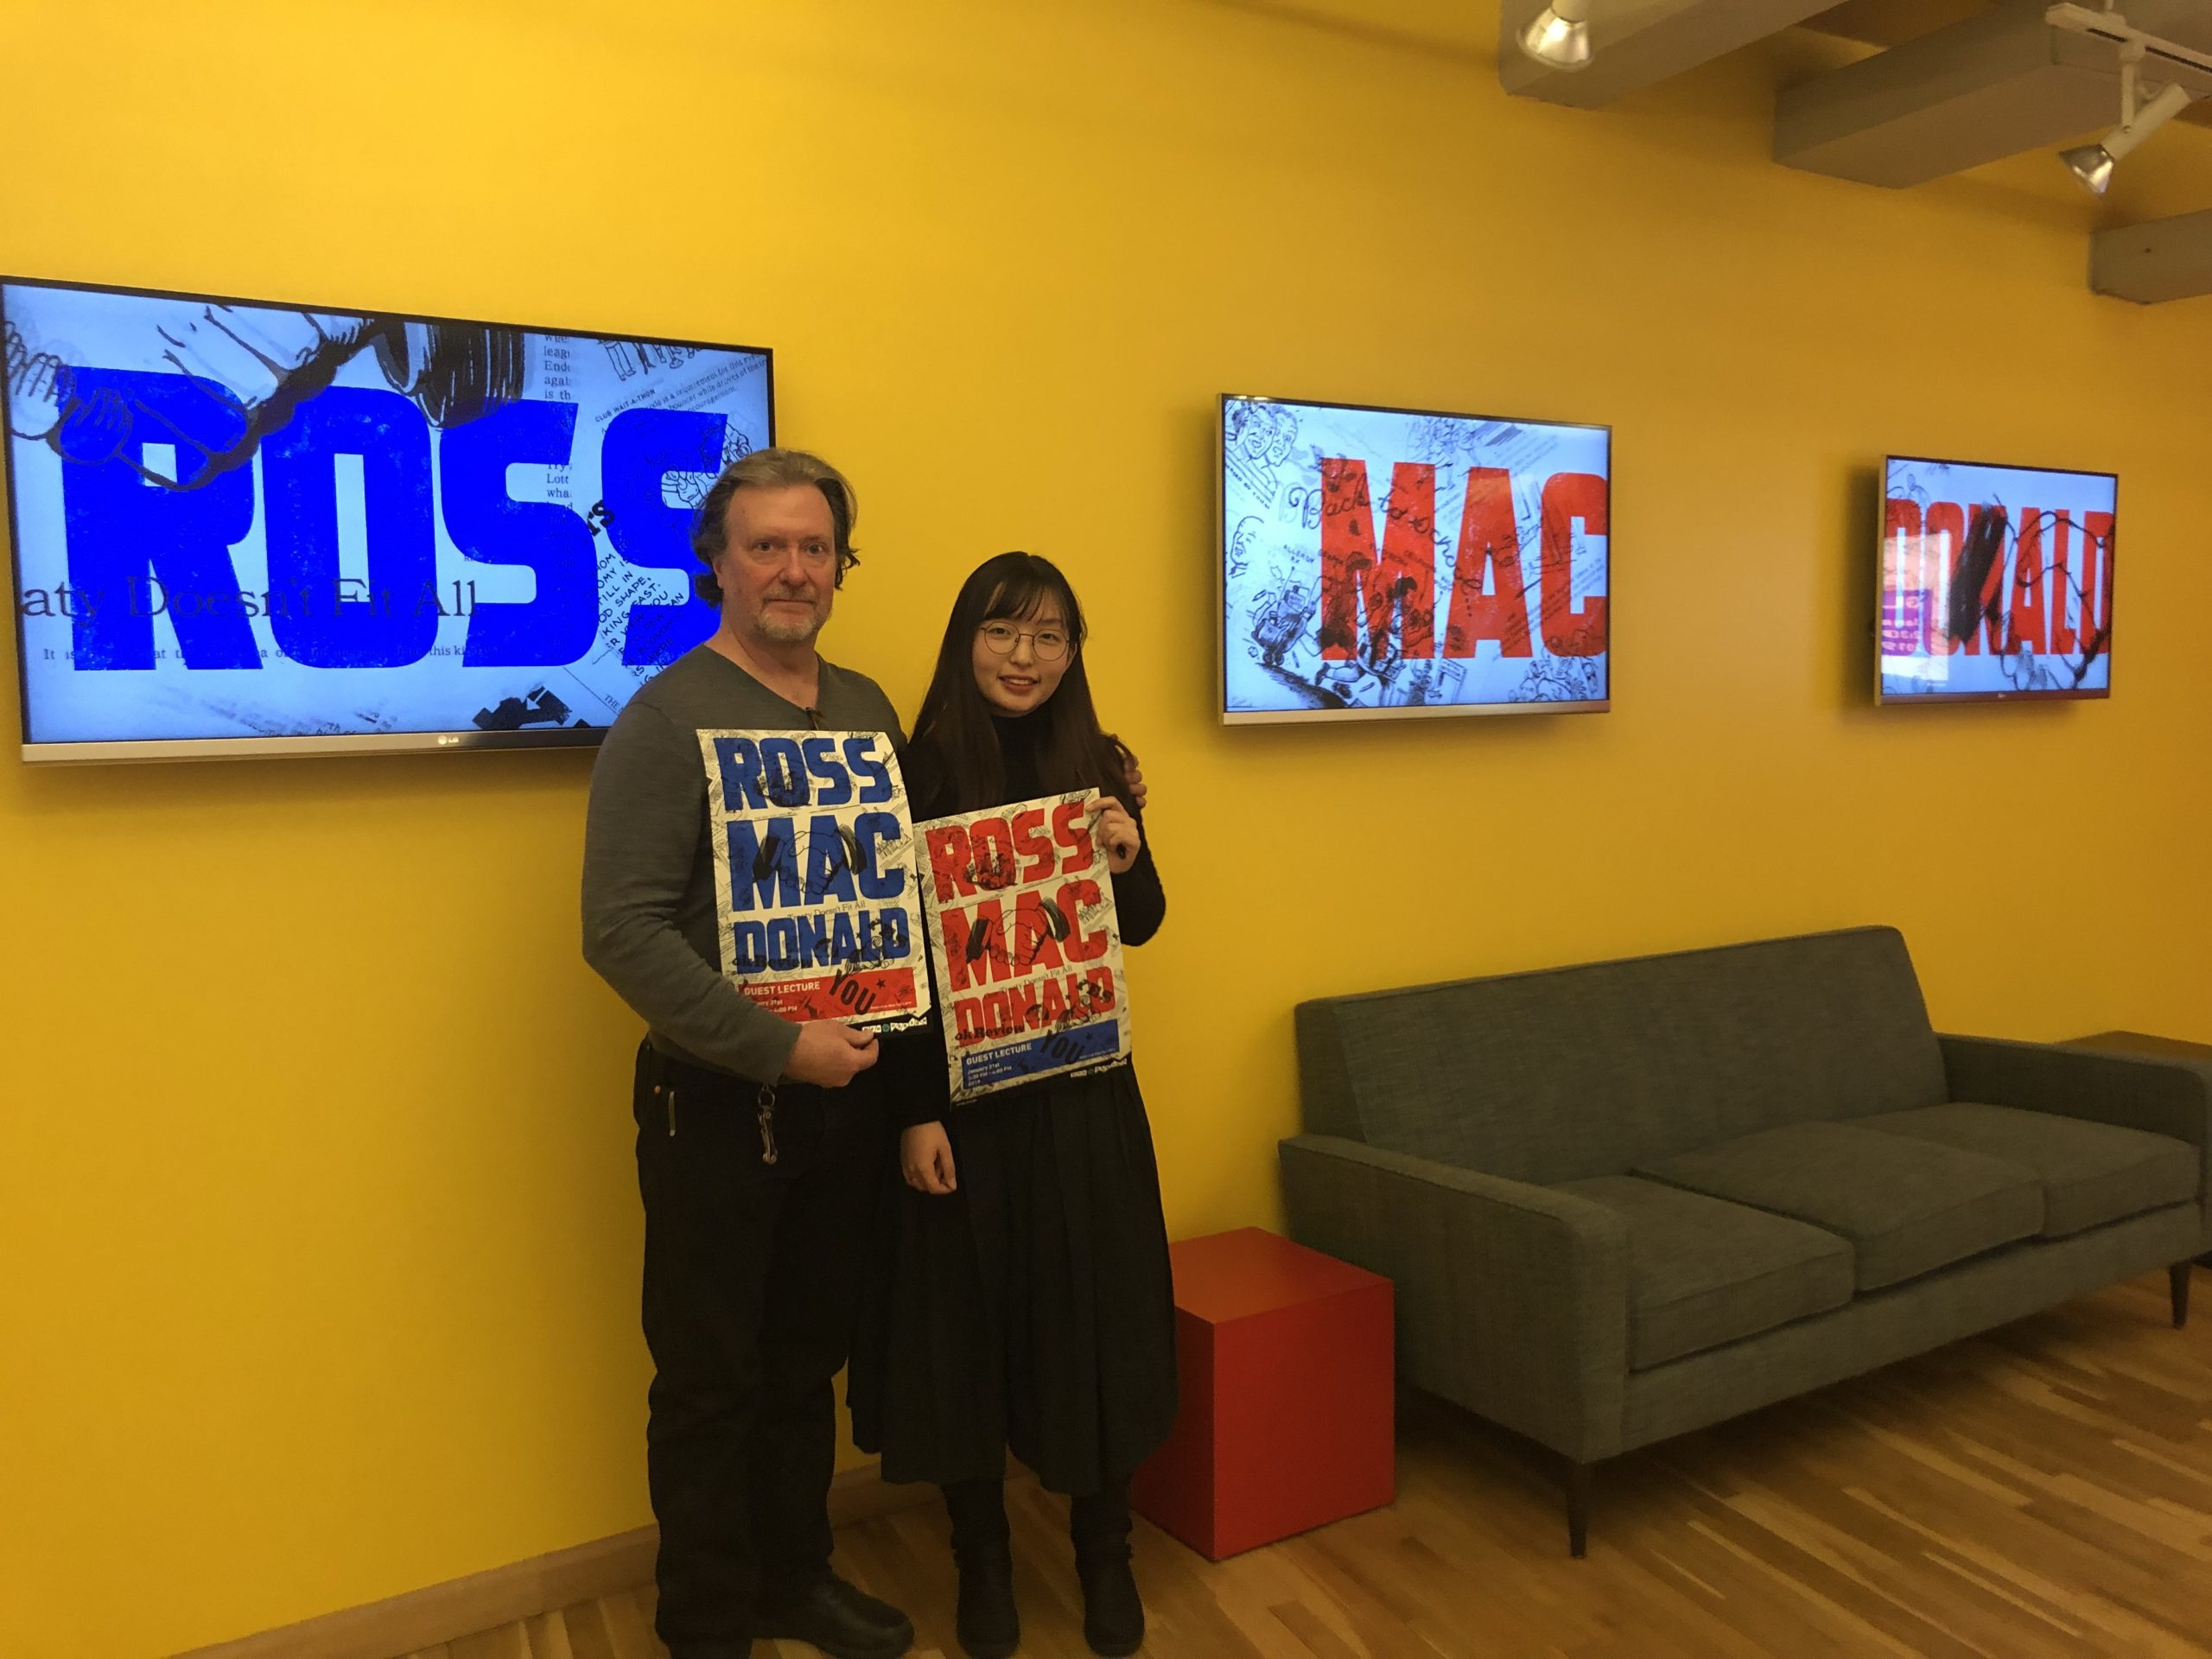 Ross Mac Donald and a student with a poster